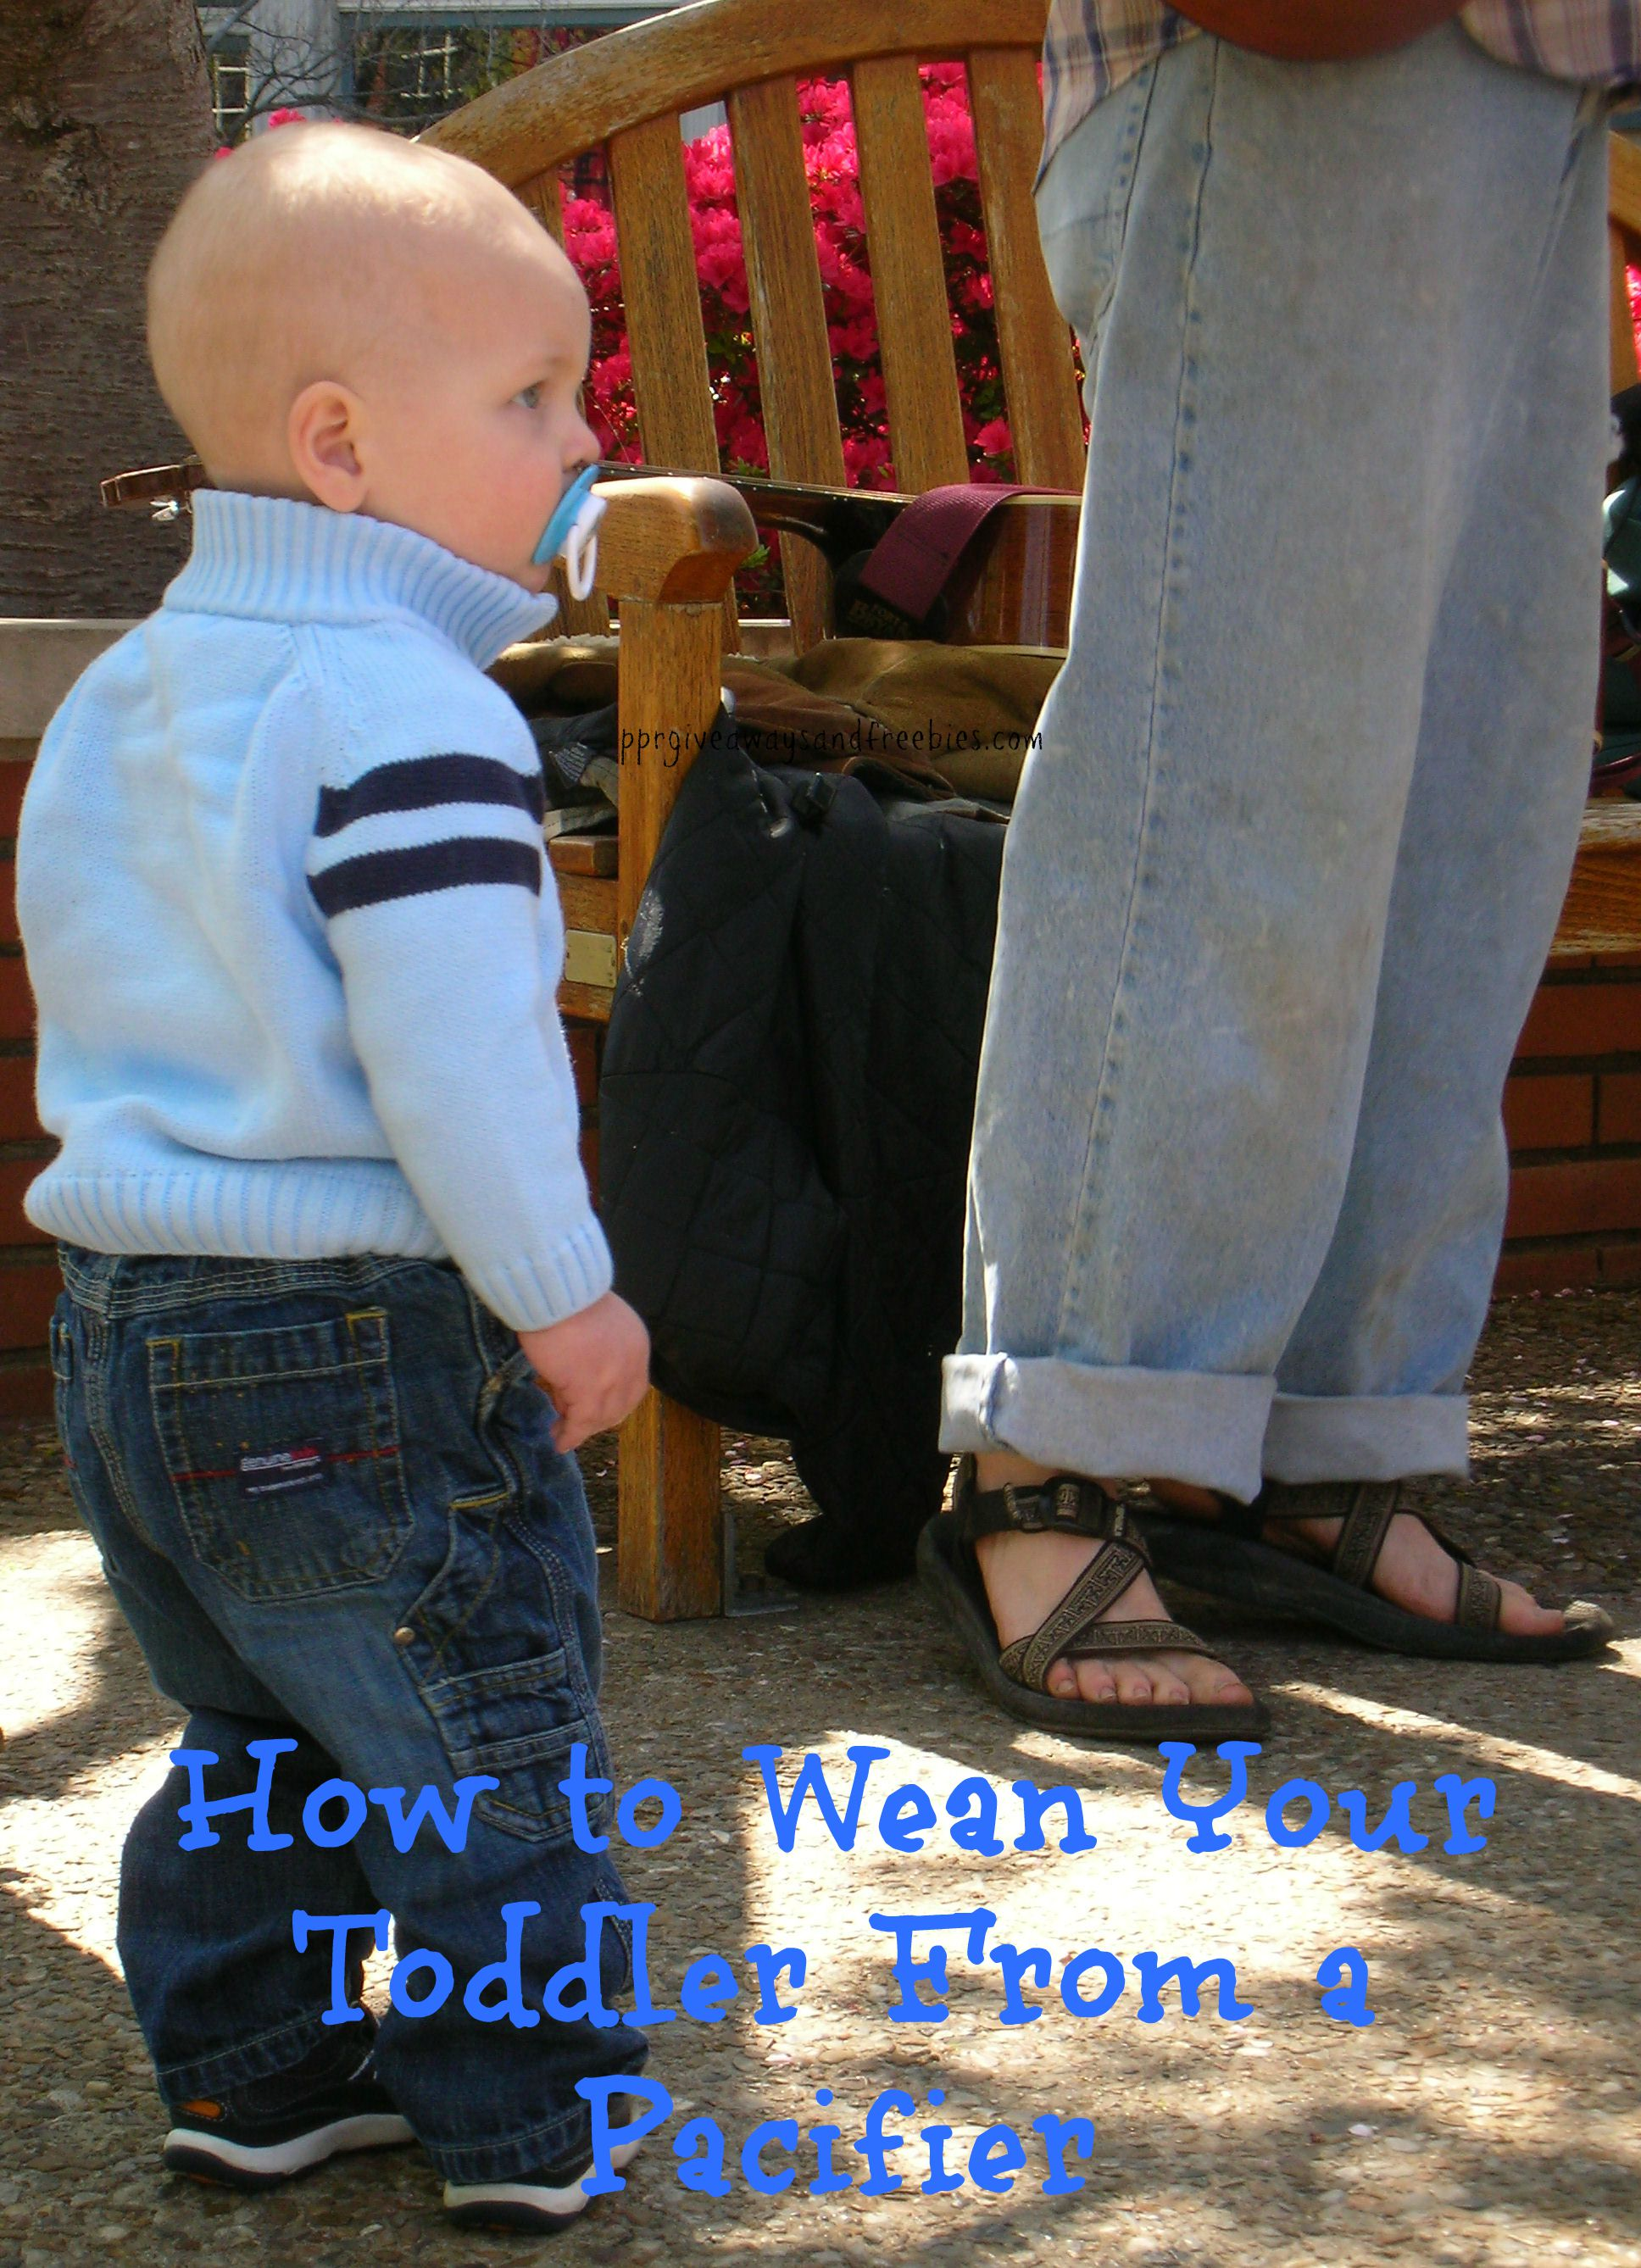 How to Wean Your Toddler from a Pacifier